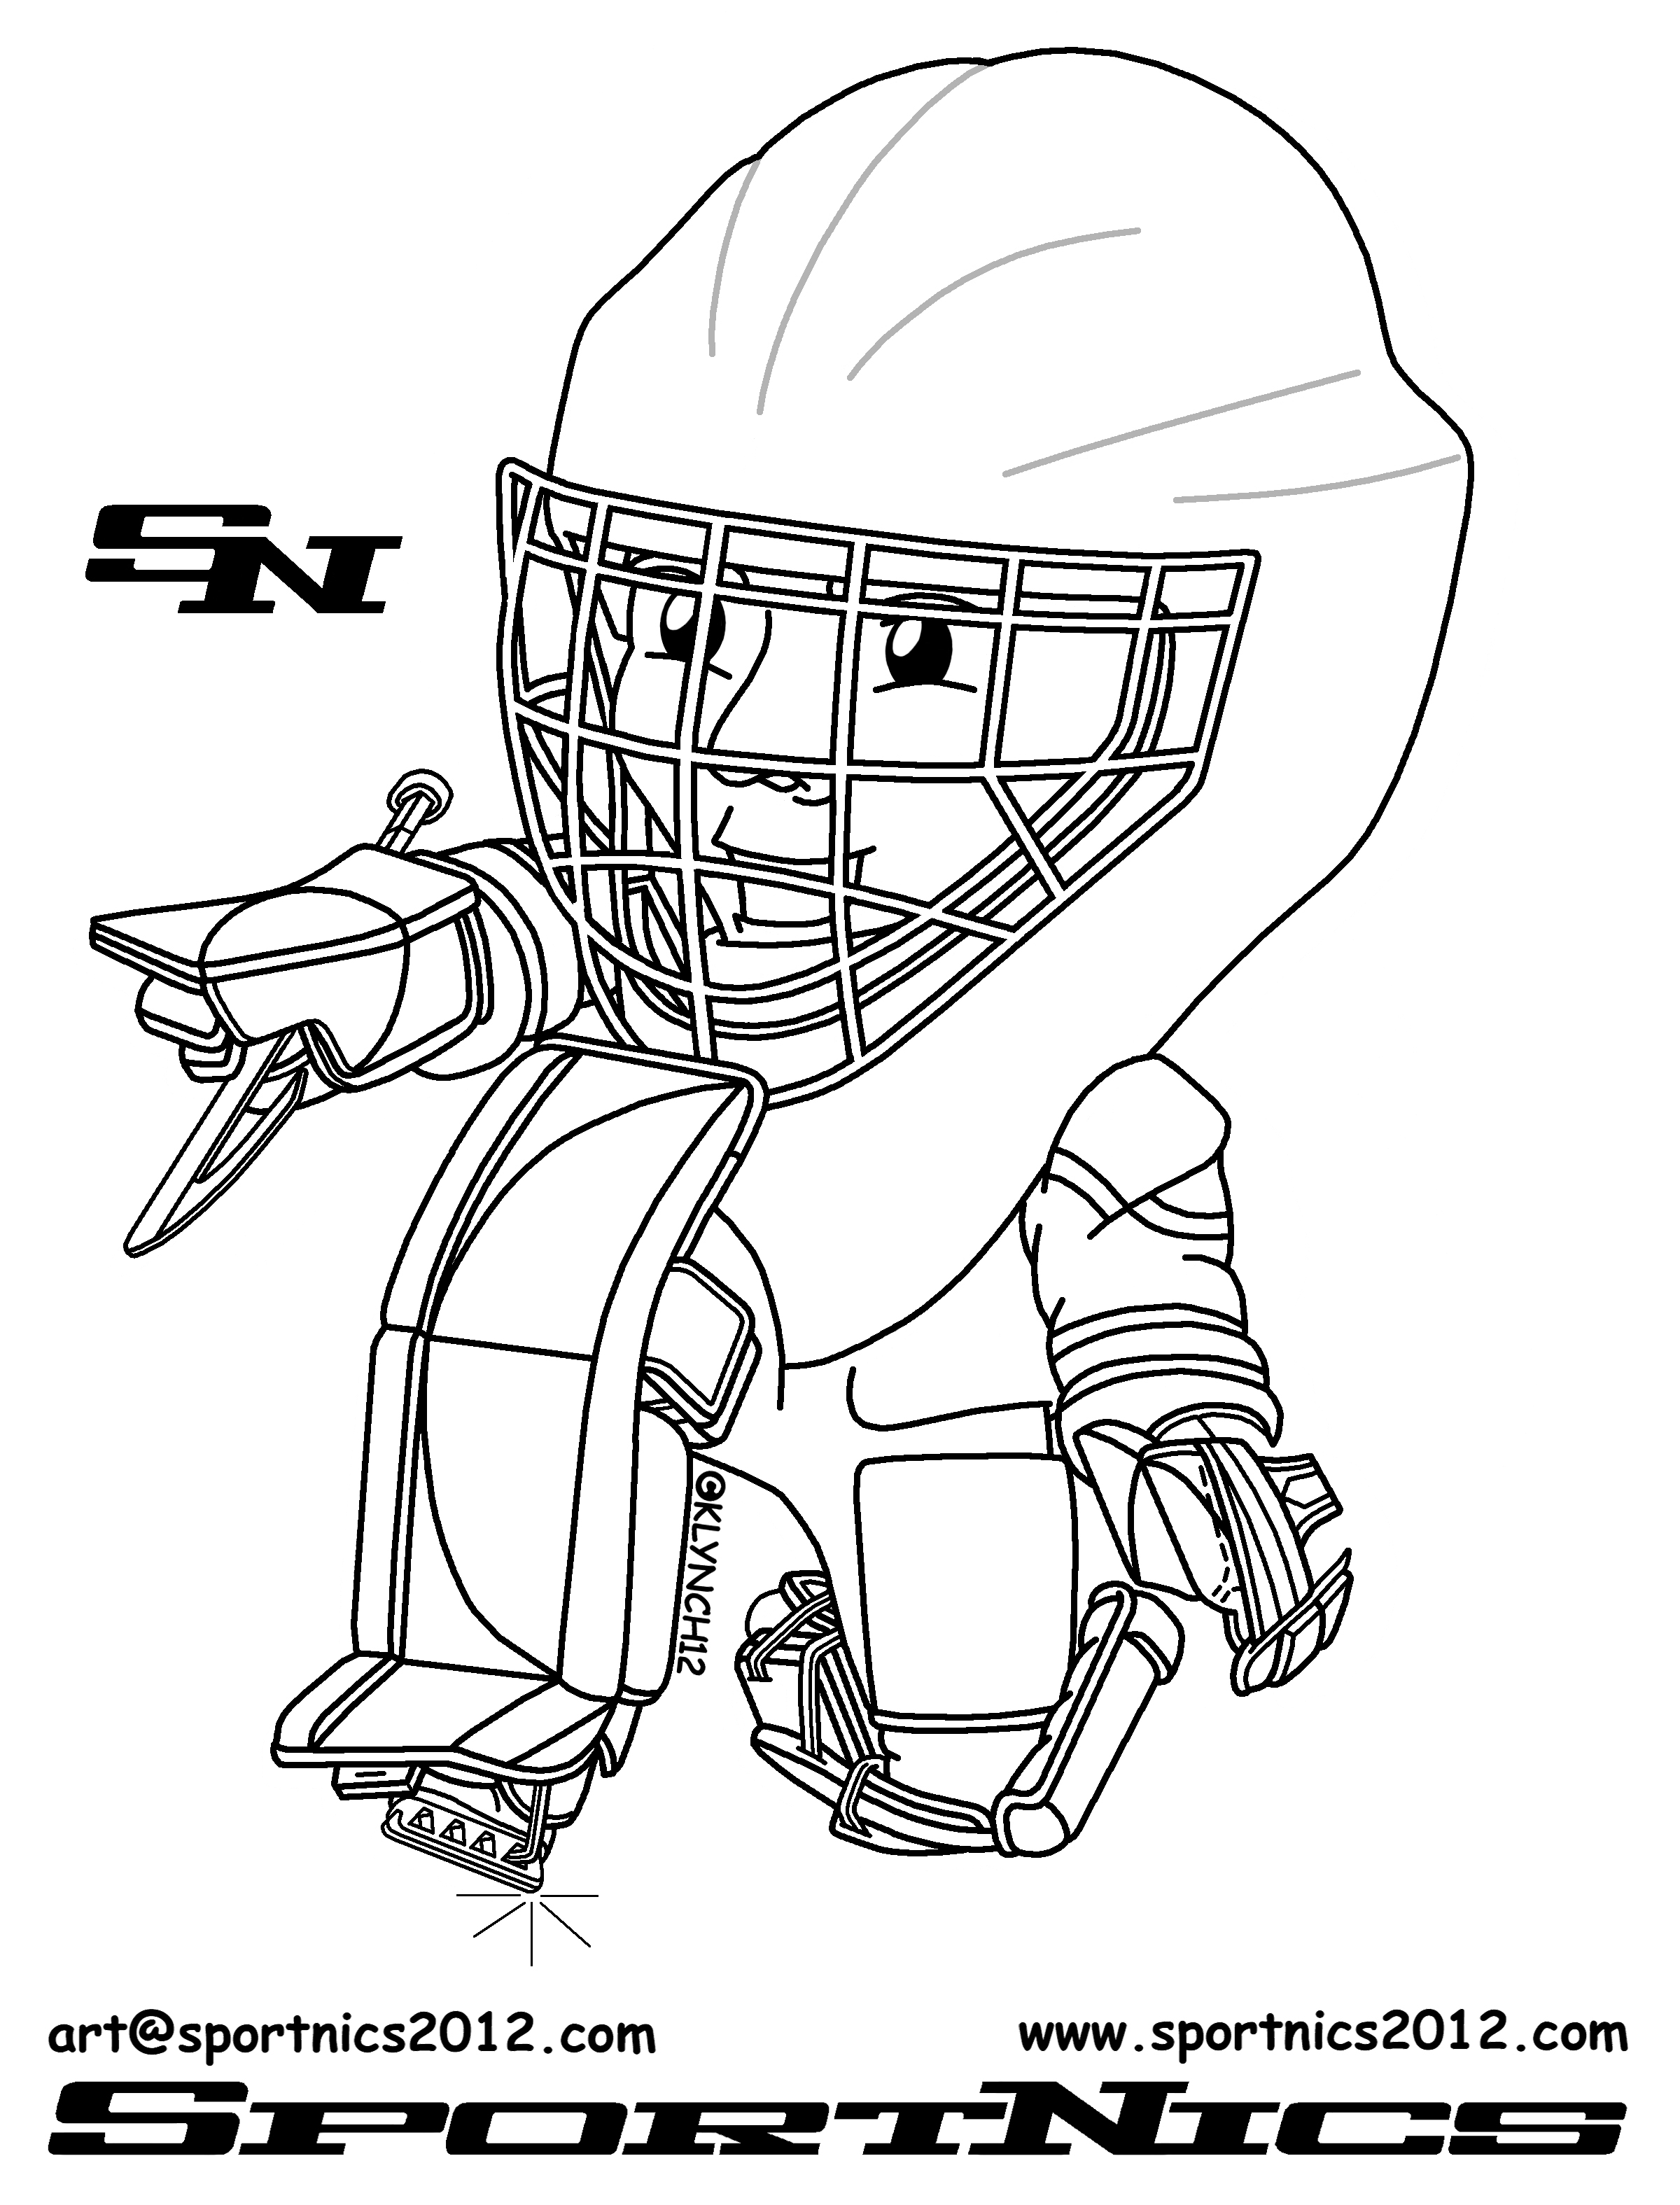 Wayne gretzky coloring pages coloring pages - Dessin hockey ...